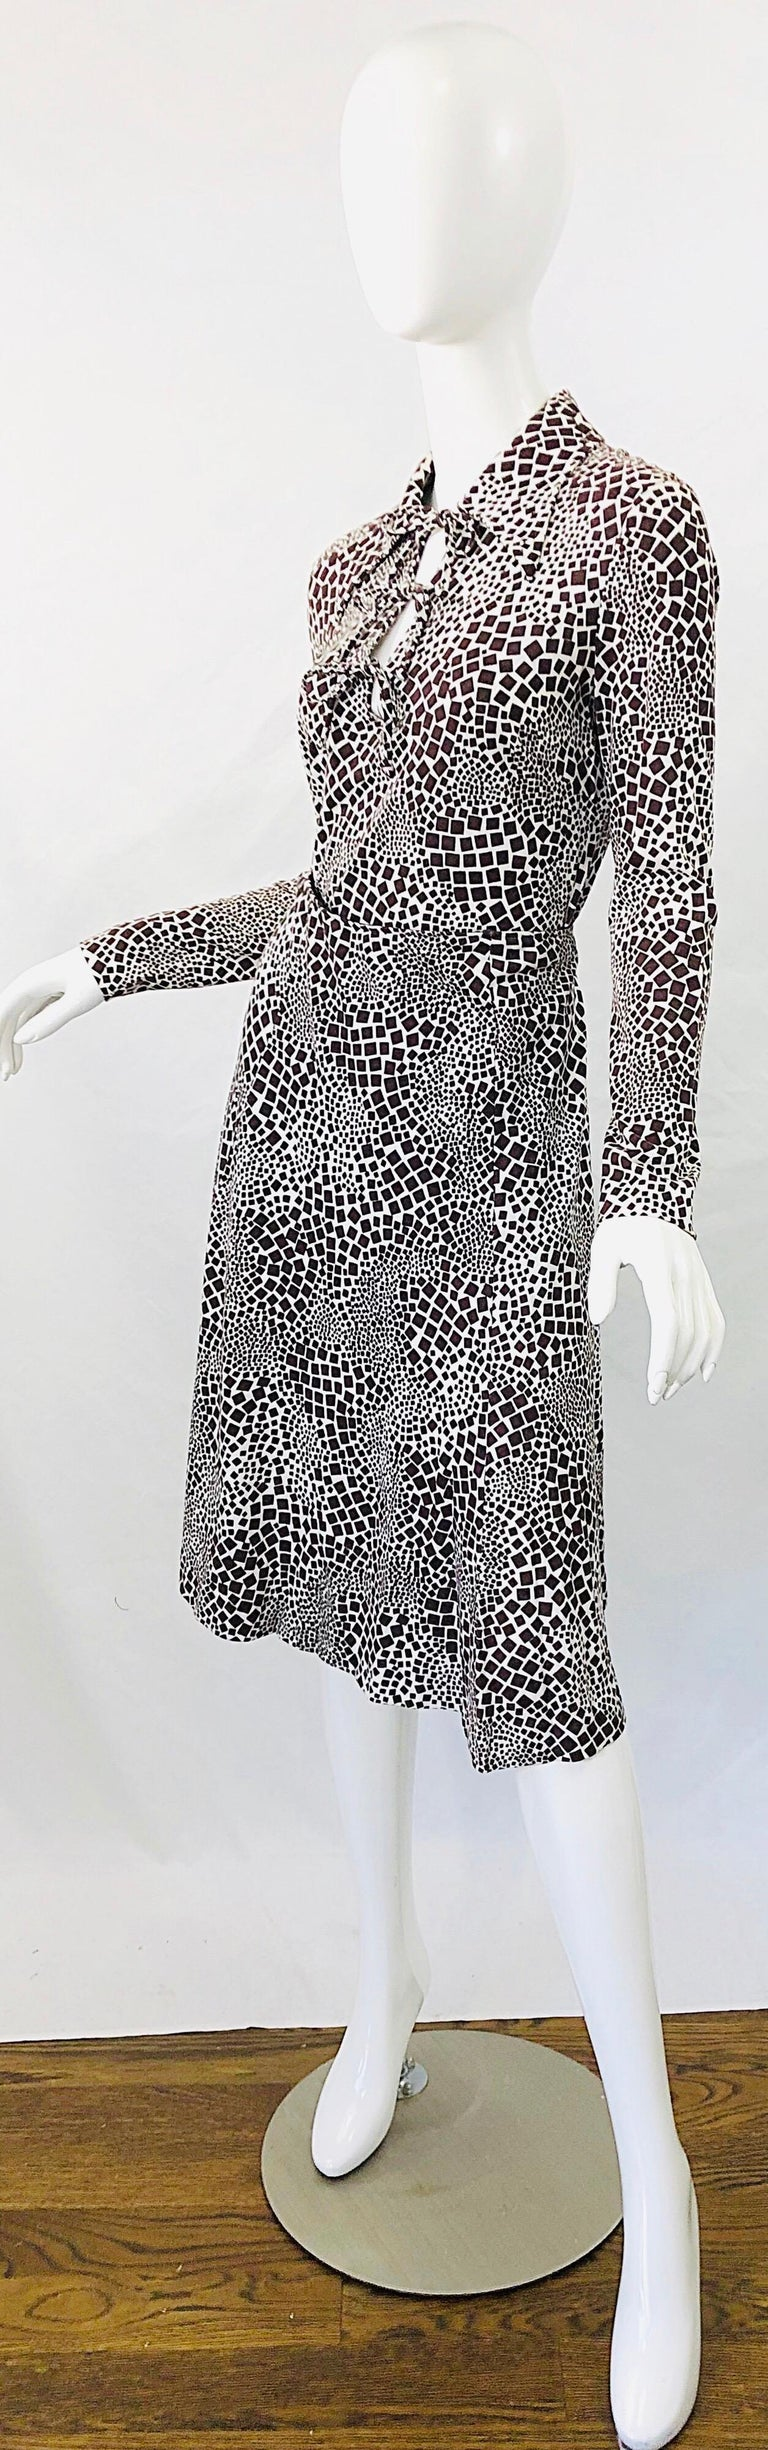 1970s Diane Von Furstenberg Brown and White Rayon Cotton Cut Out Top Skirt Dress For Sale 2